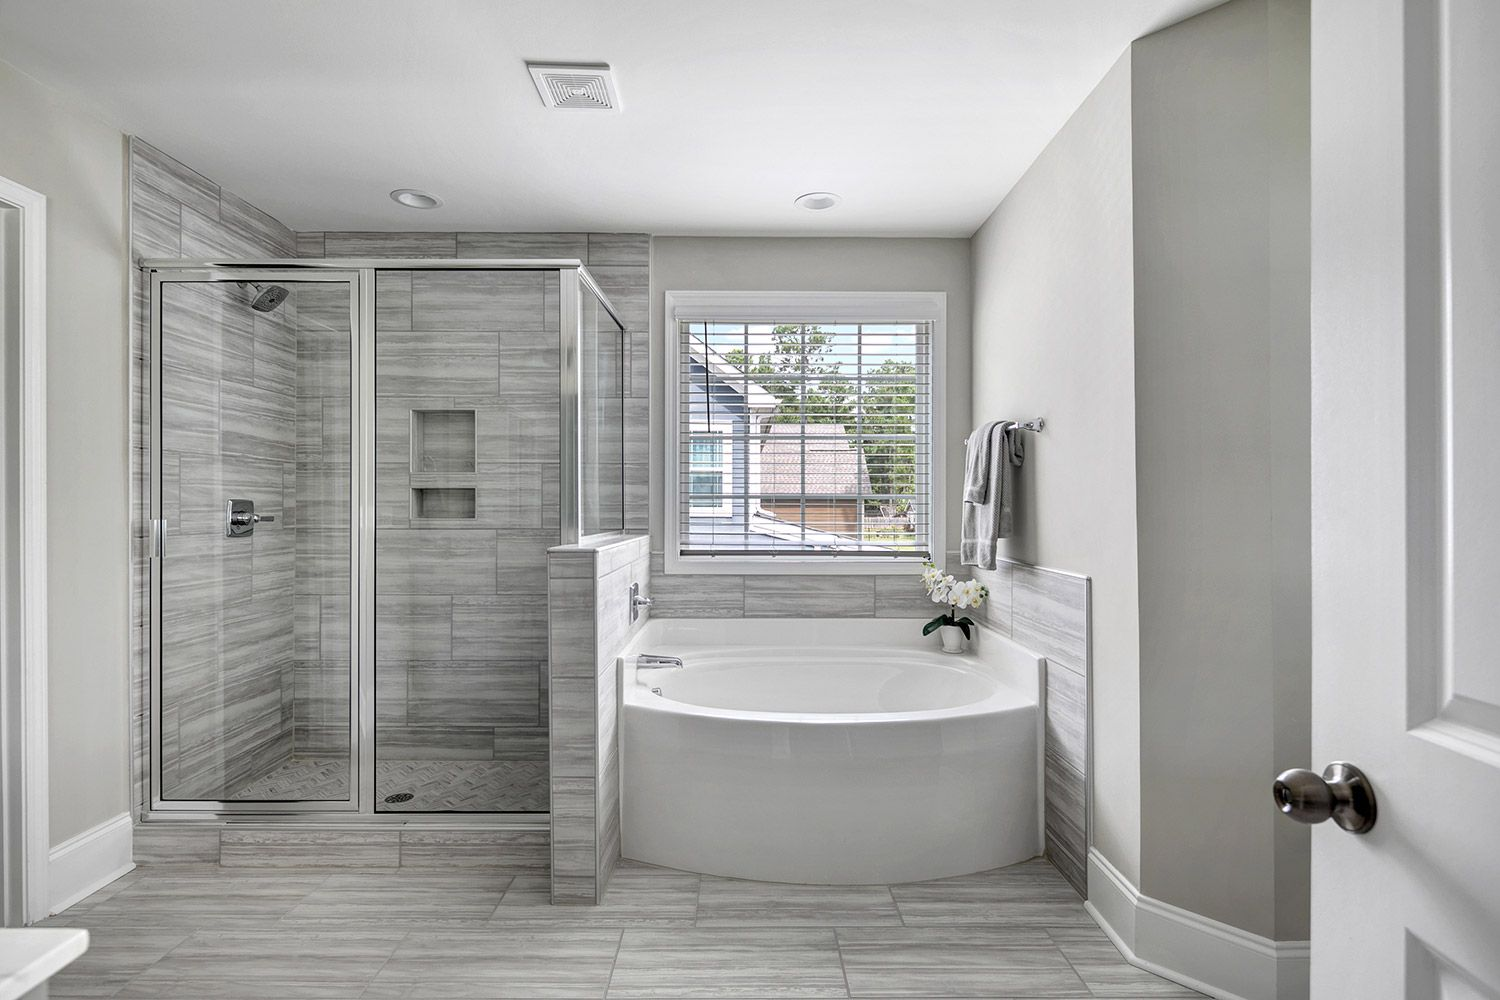 Bathroom featured in the Nelson 2020 Craftsman By McKee Homes in Pinehurst-Southern Pines, NC